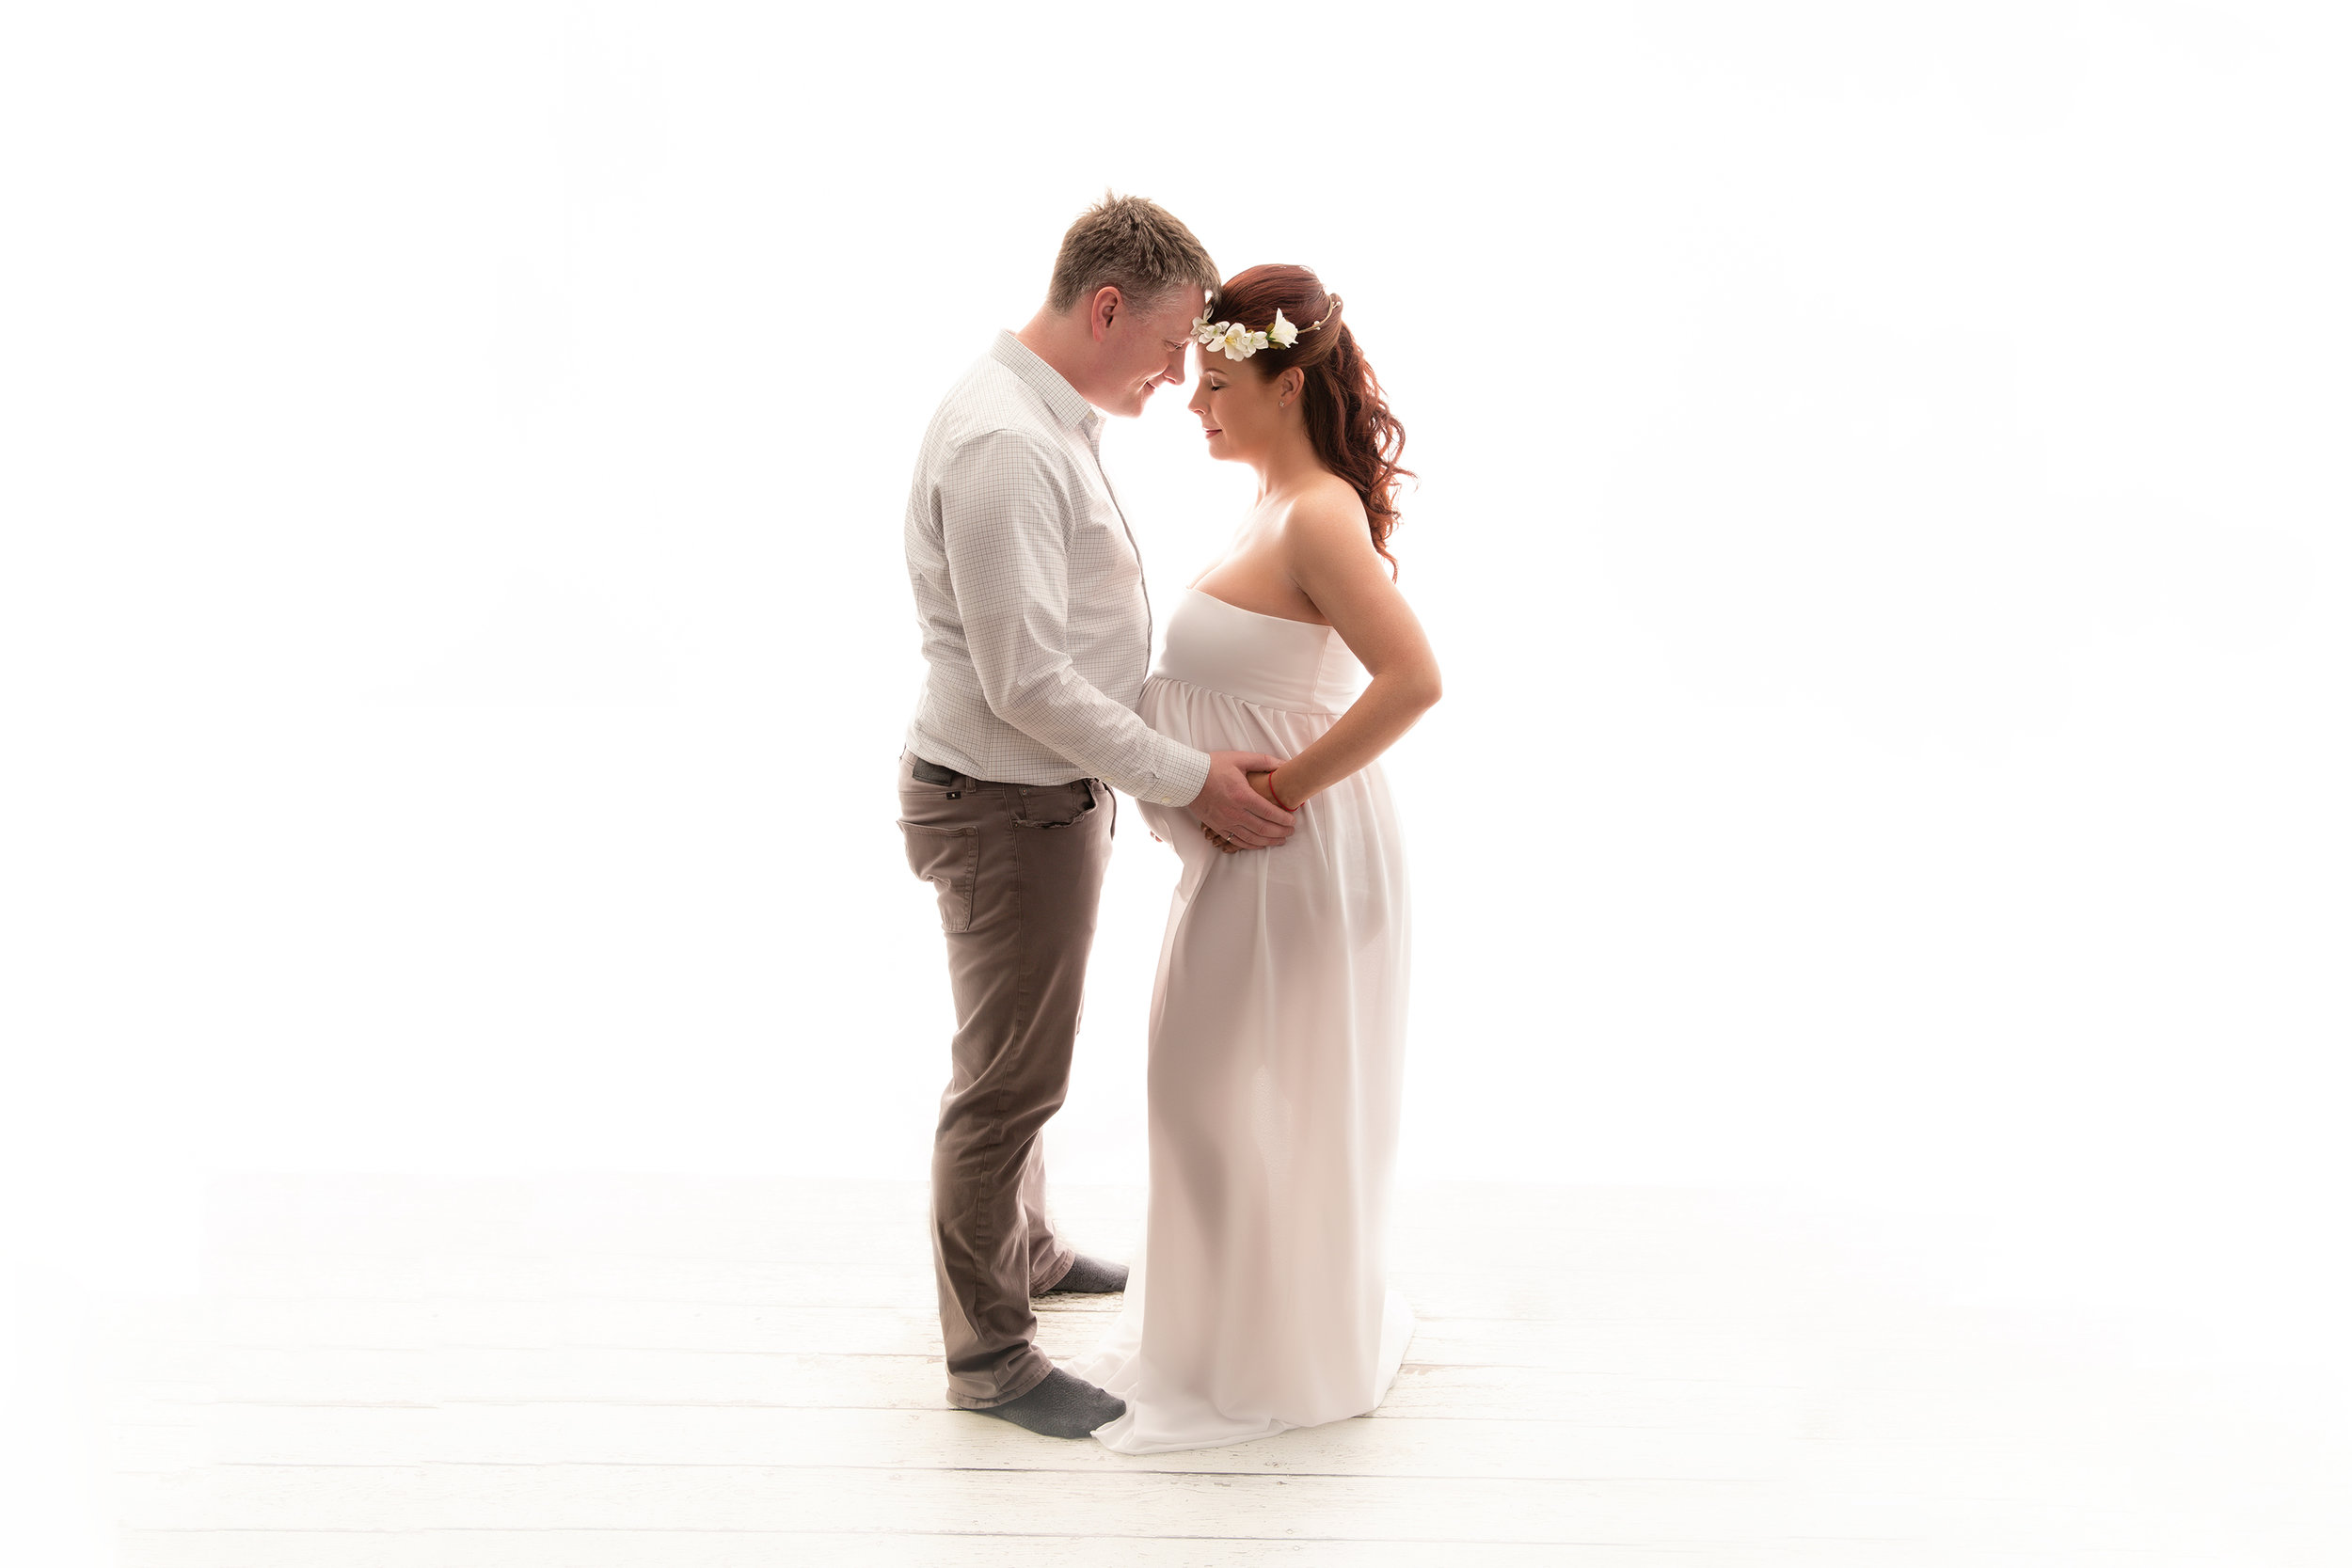 Expectant couple posing in this backlit image. Mom to be is wearing a white gown. Maternity Photoshoot ideas. Calgary Maternity and Newborn photographer - Milashka Photography